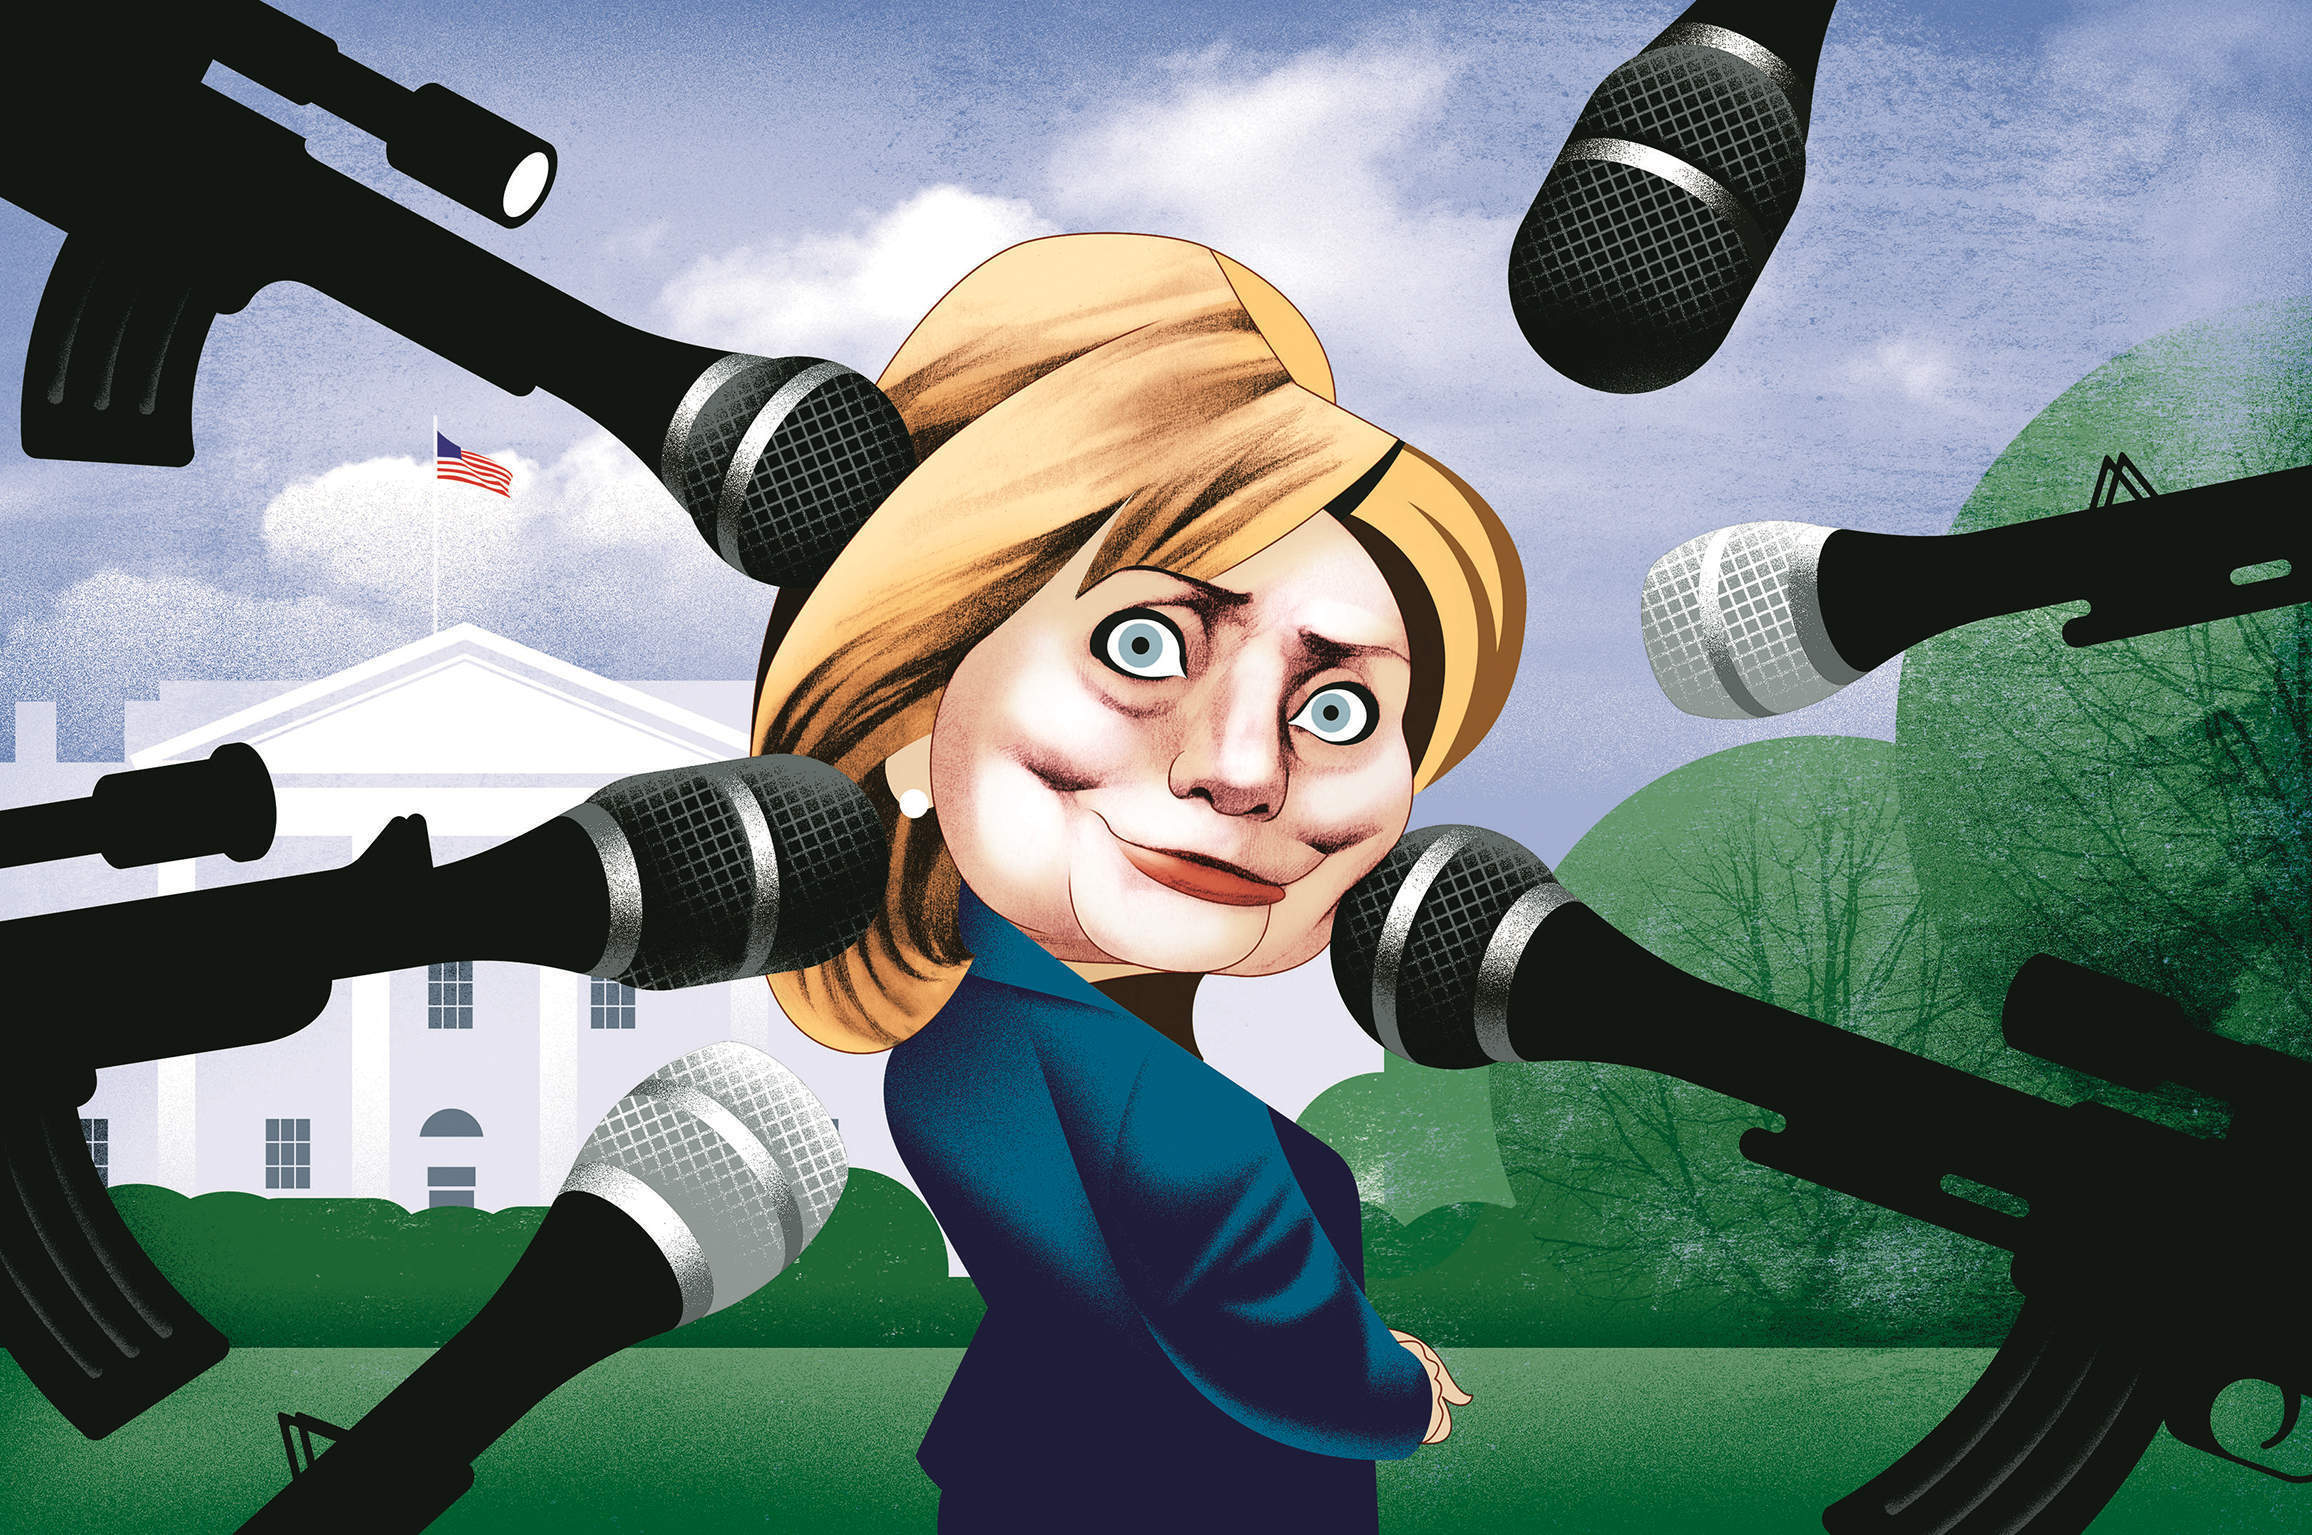 Hillary Clinton's haters and the glass ceiling of American politics